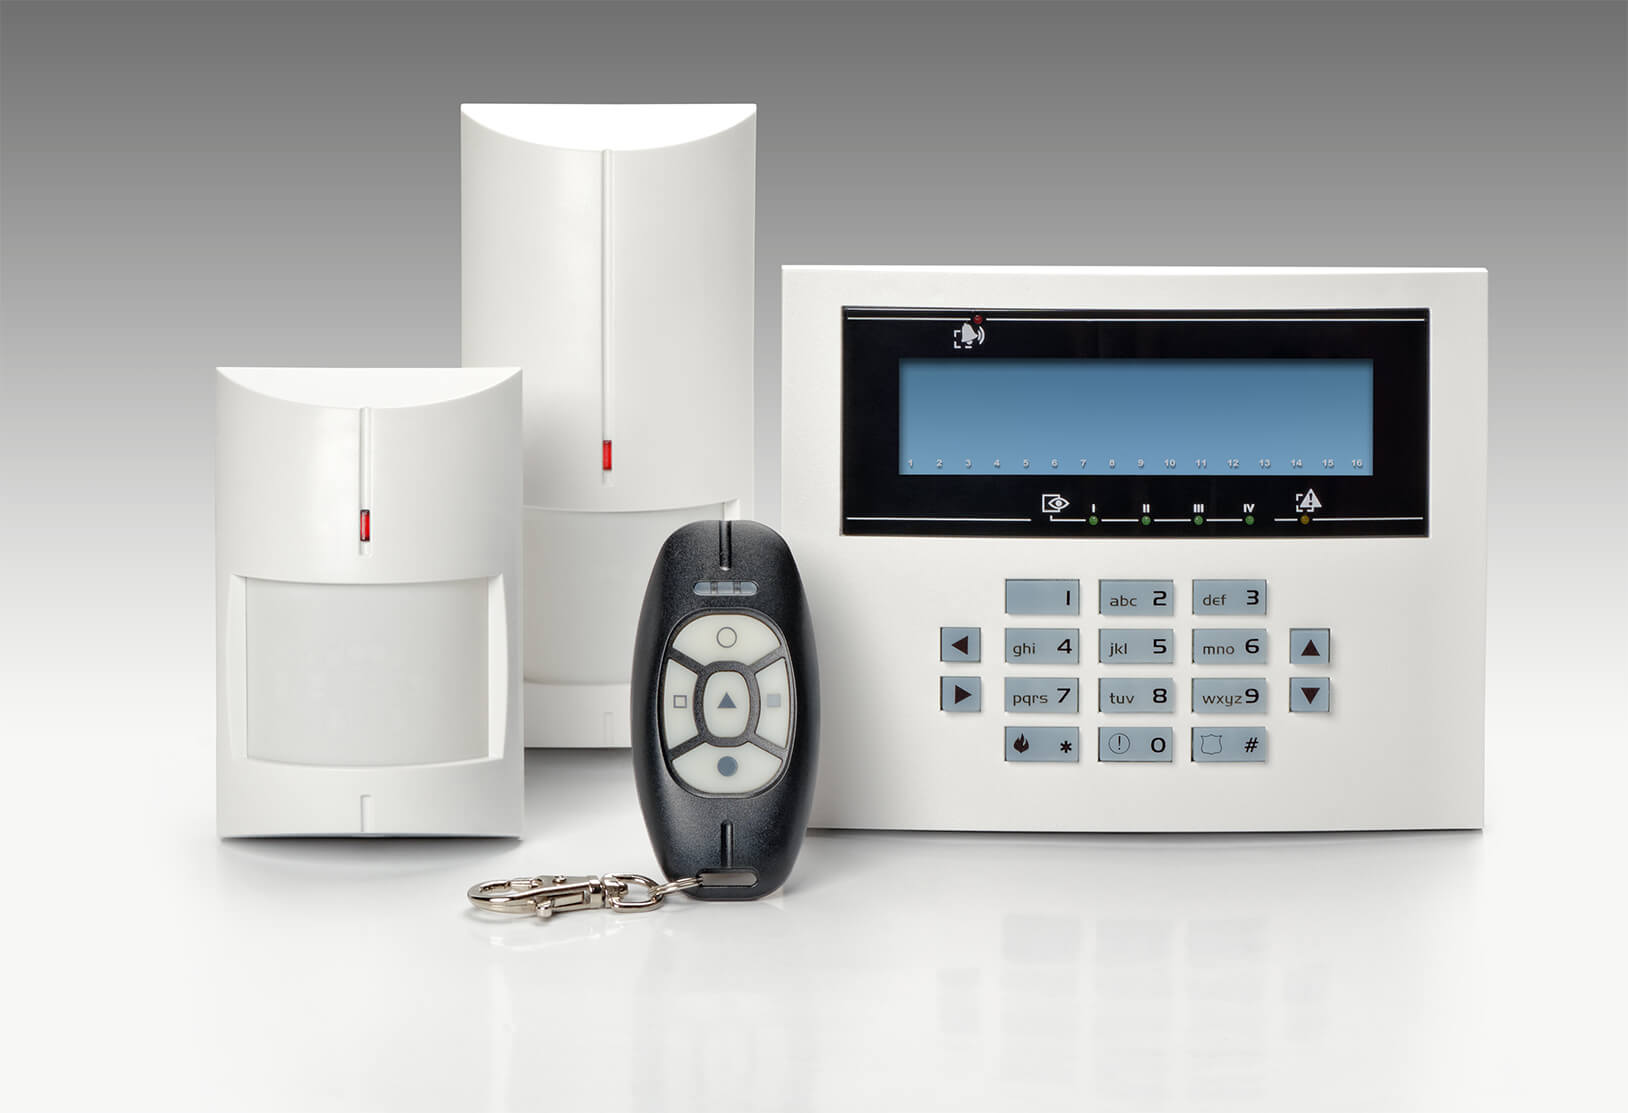 Business & Residential NACOSS Approved Burglar Alarms In Kensington SW3 - Local Kensington SW3 security company.Call 02078872244 - Dedicated to Safety & Security. Companies, shops and homes ..